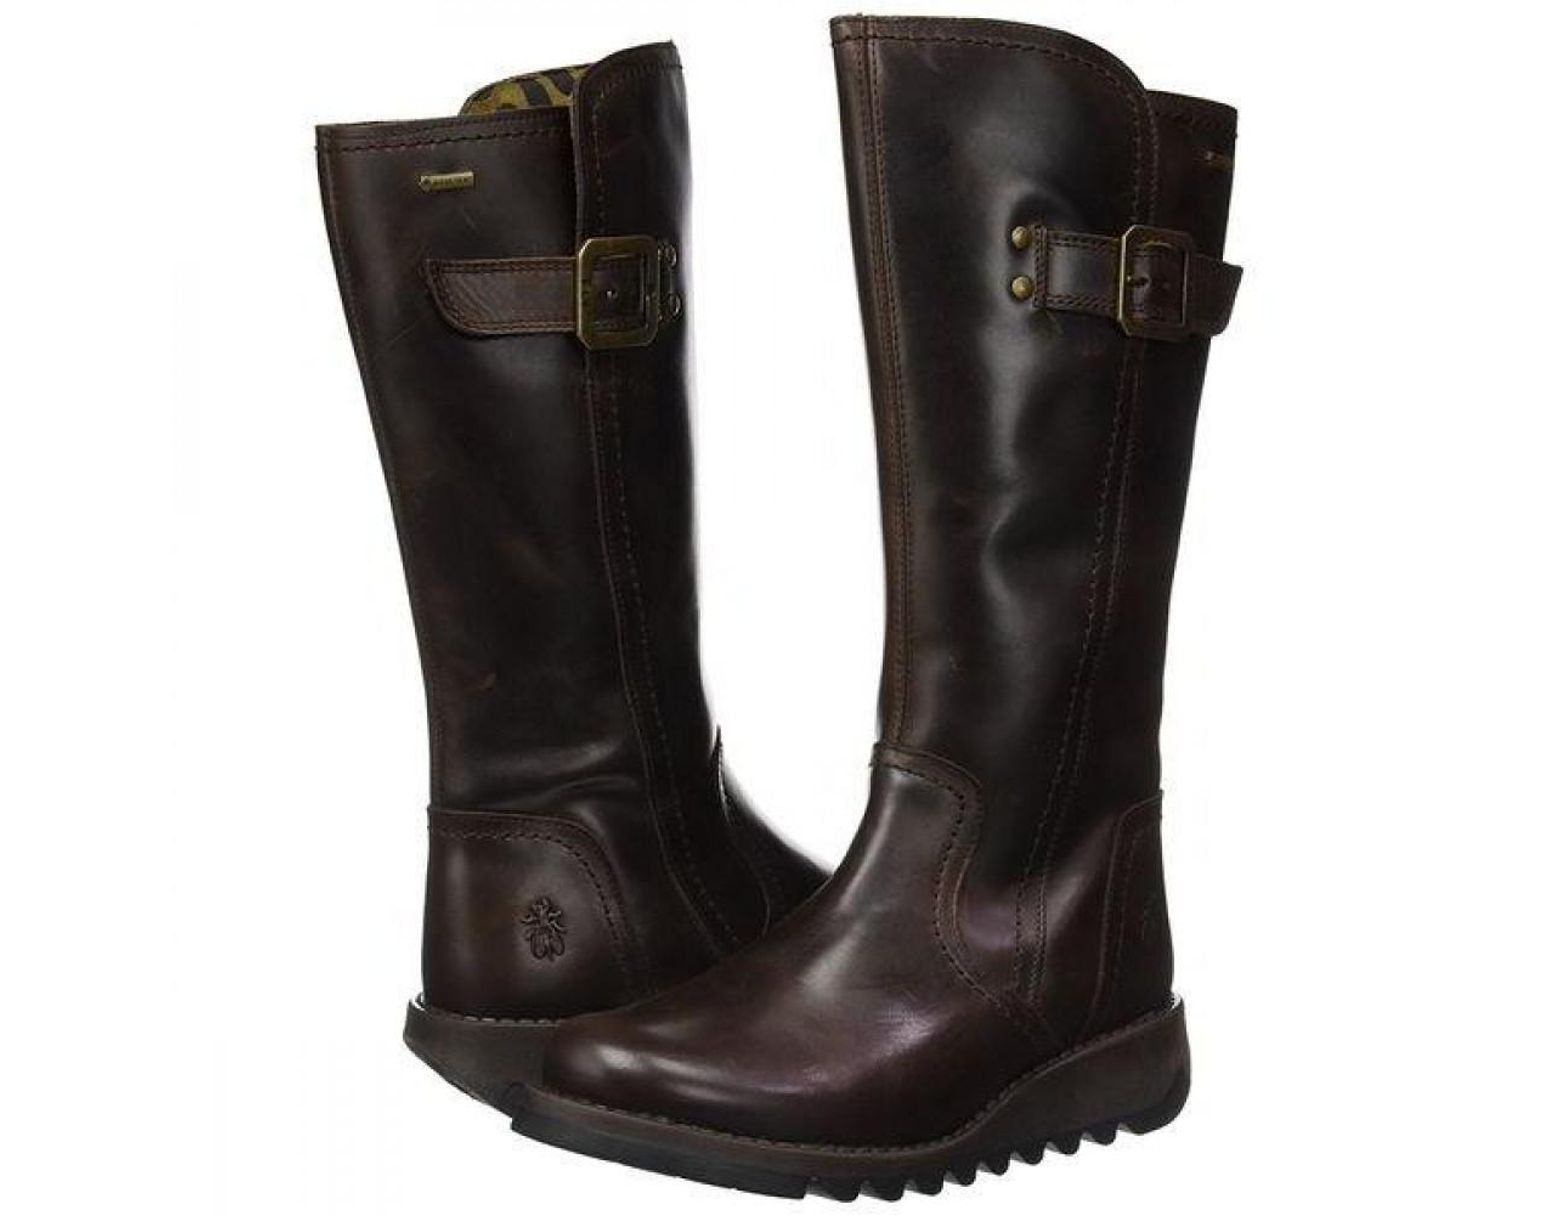 5d149eb74b14c Fly London Leather Shap Gtx Waterproof Wedge Boots in Brown - Save ...